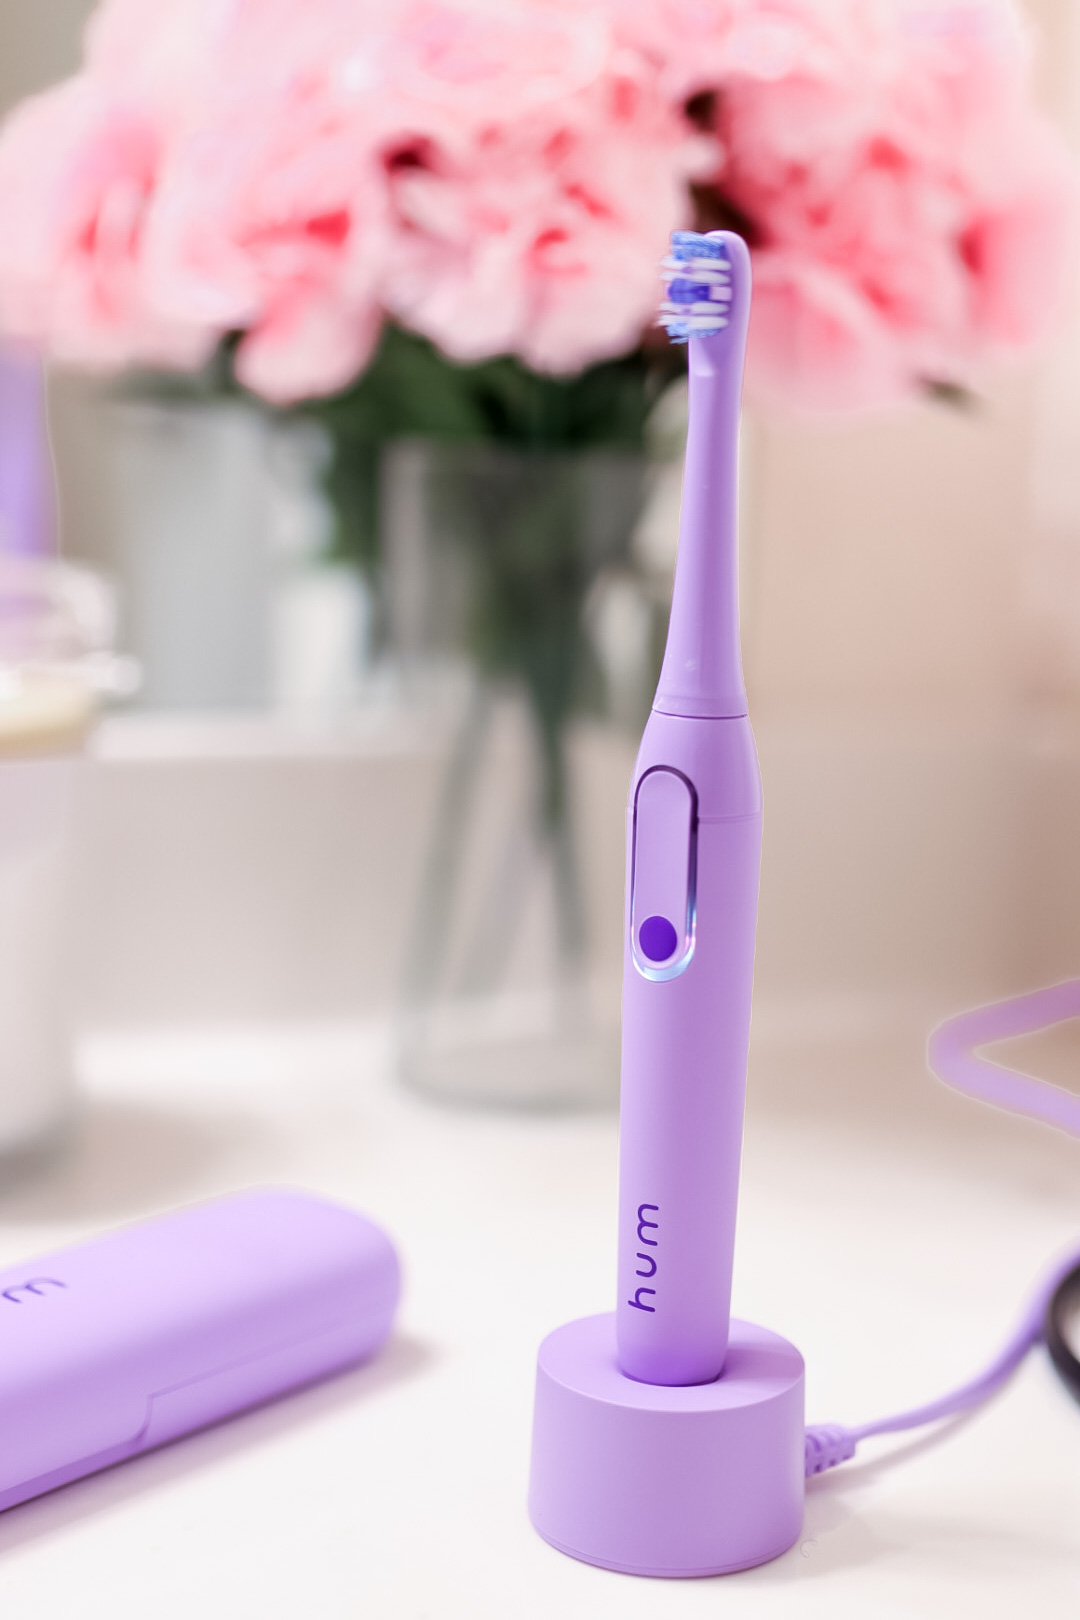 hum by Colgate® Smart Electric Toothbrush in the color purple